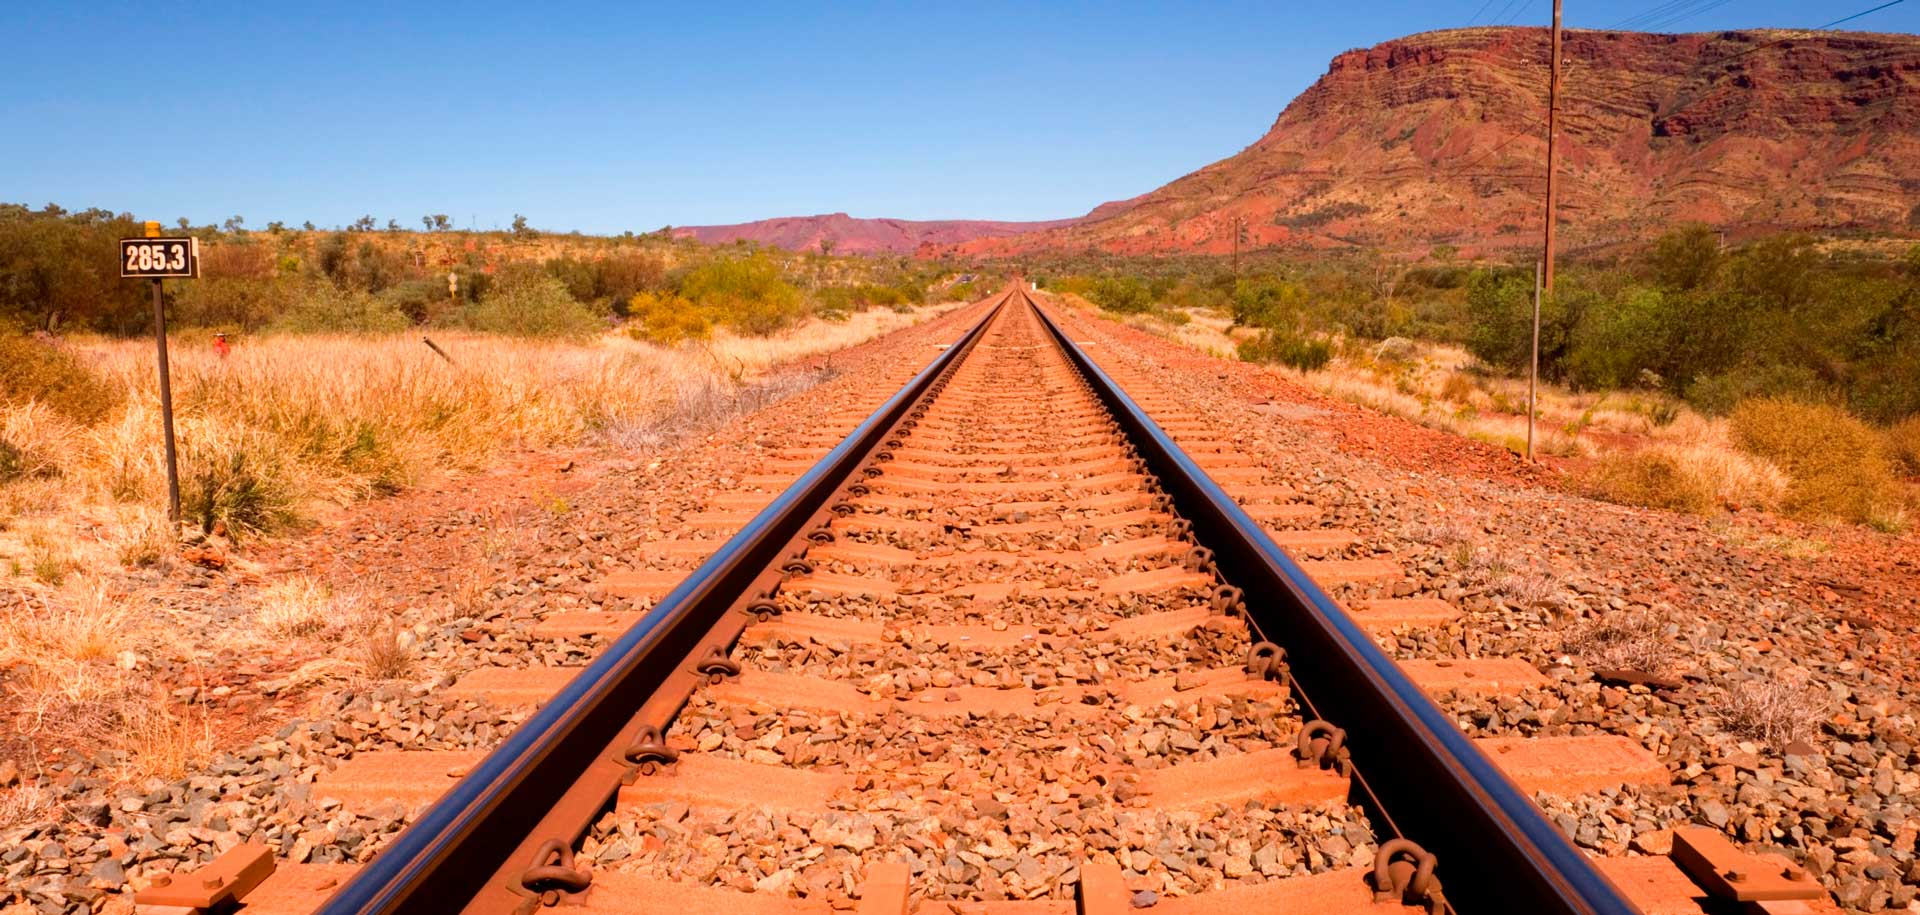 Railway tracks with red sand in background